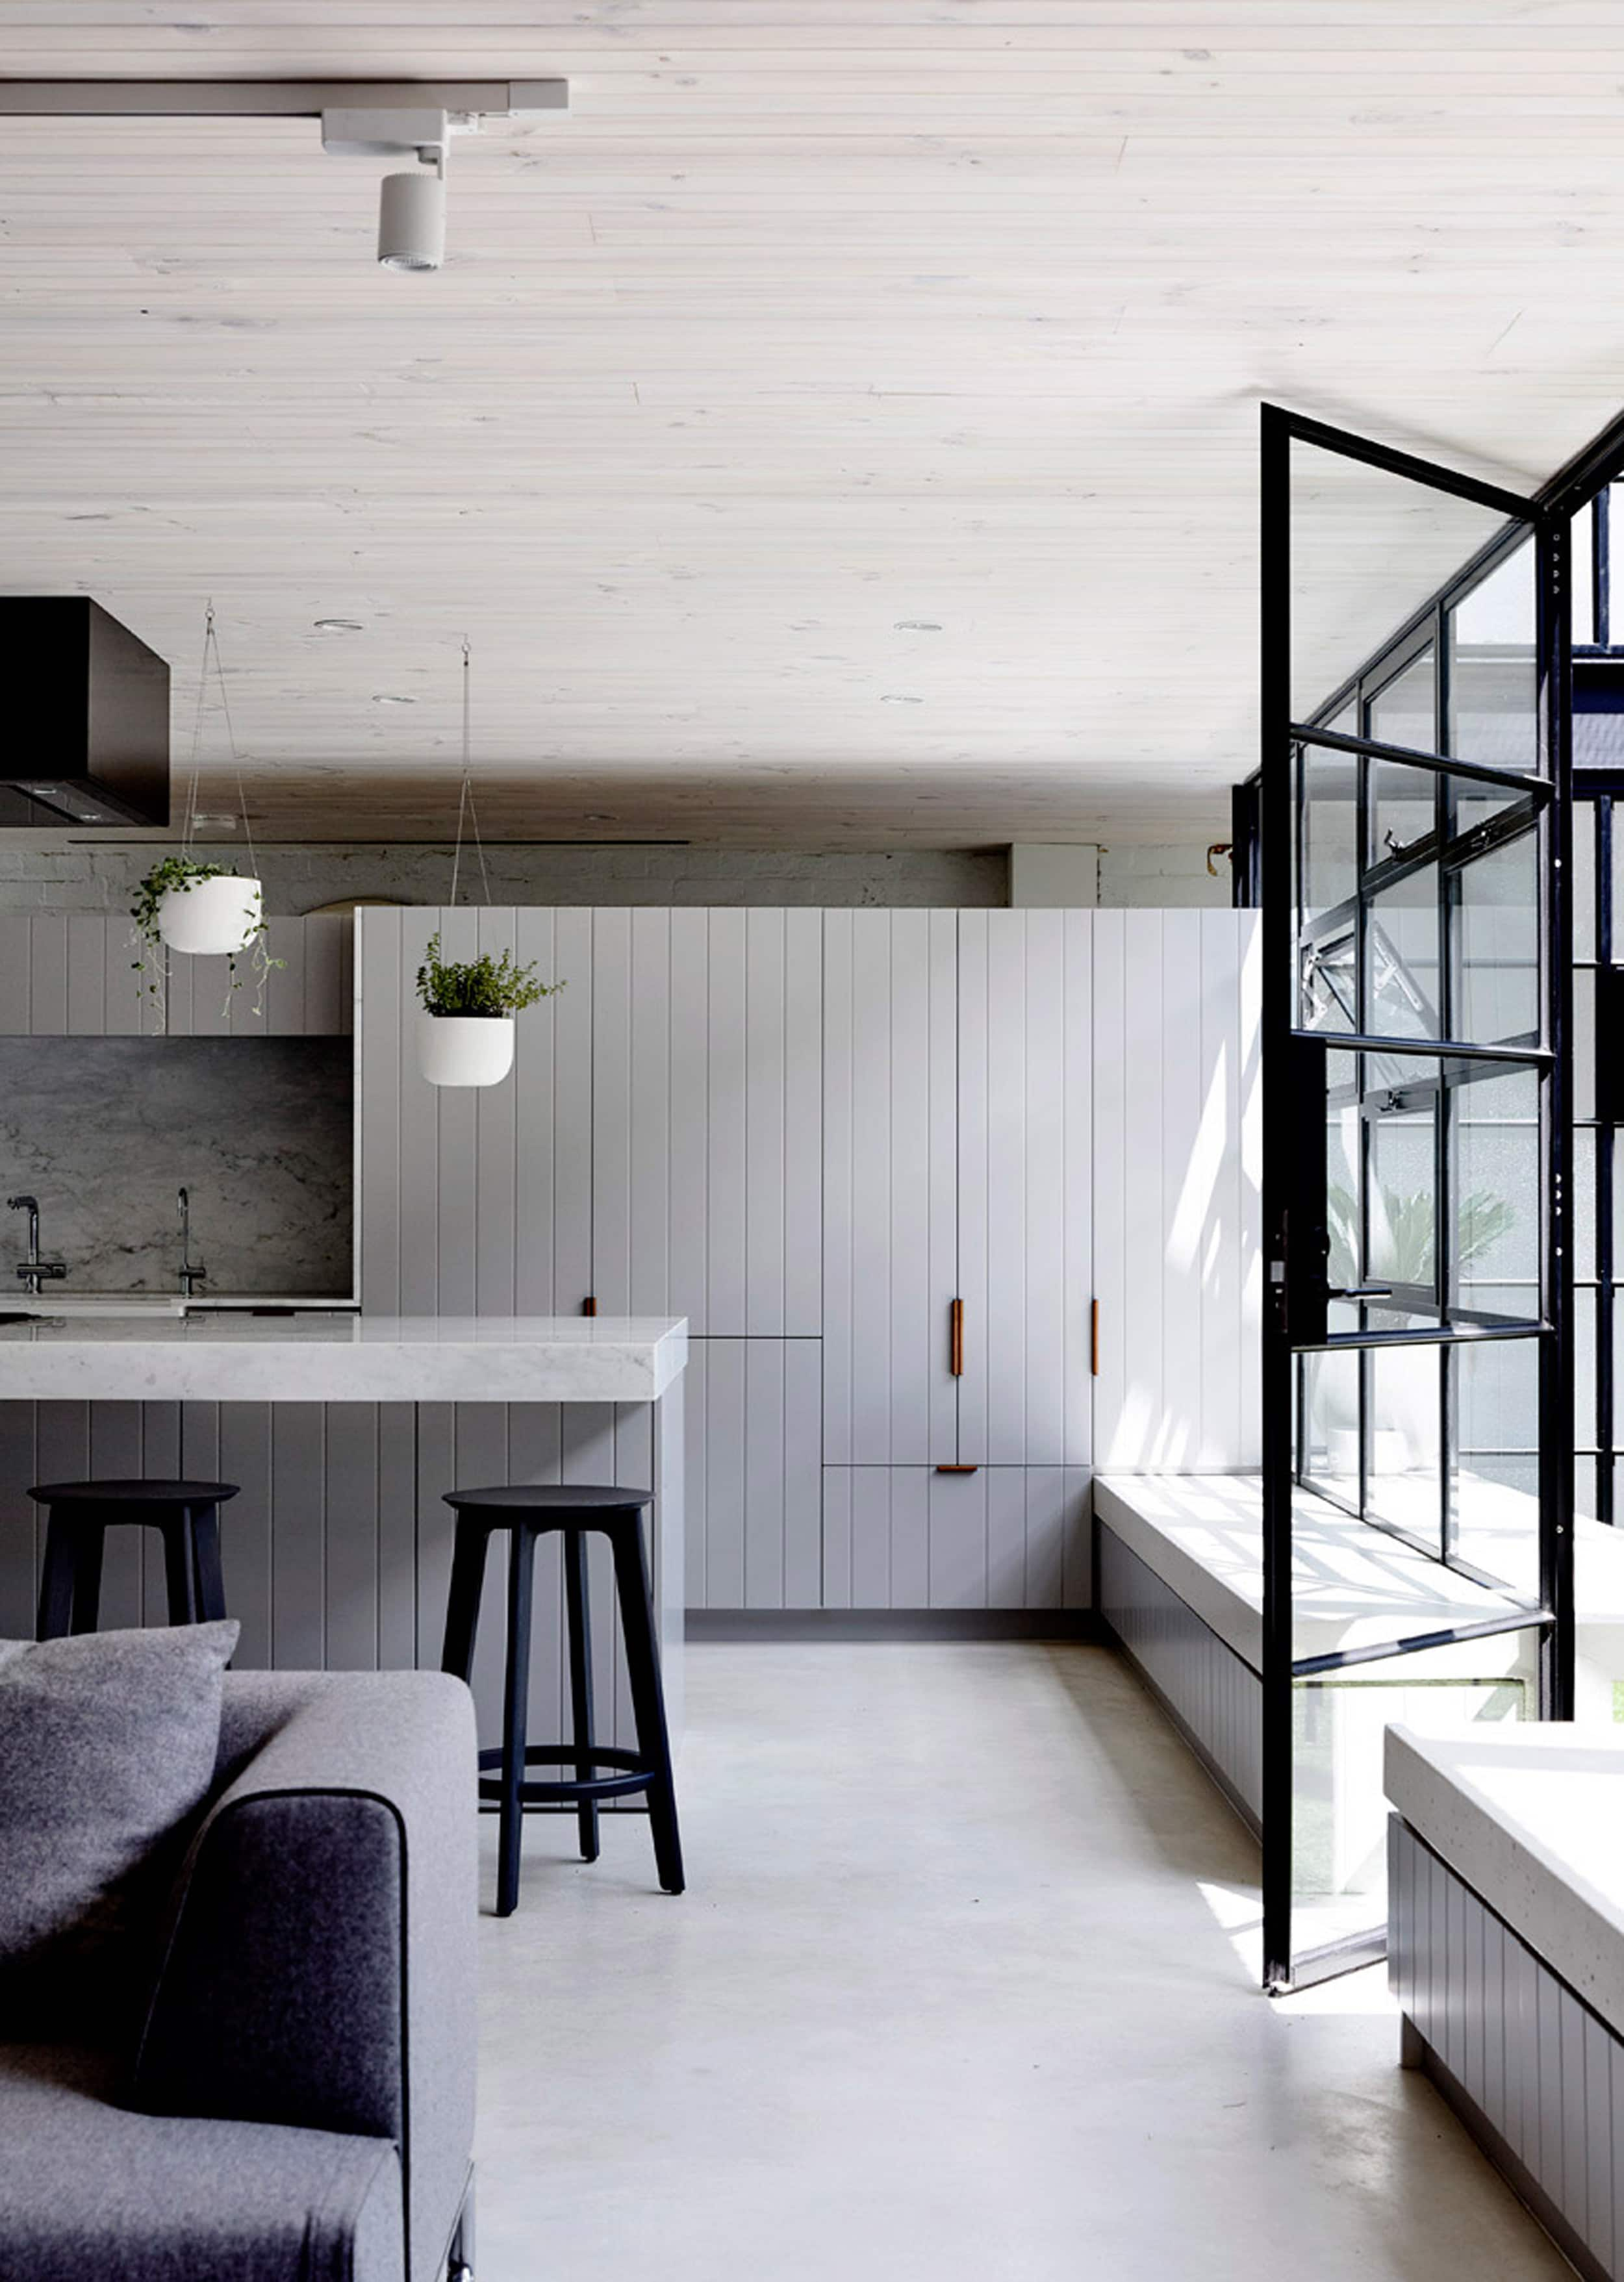 9 Kitchen Trends For 2019 We Re Betting Will Be Huge Emily Henderson,Color Combination For Black Shirt